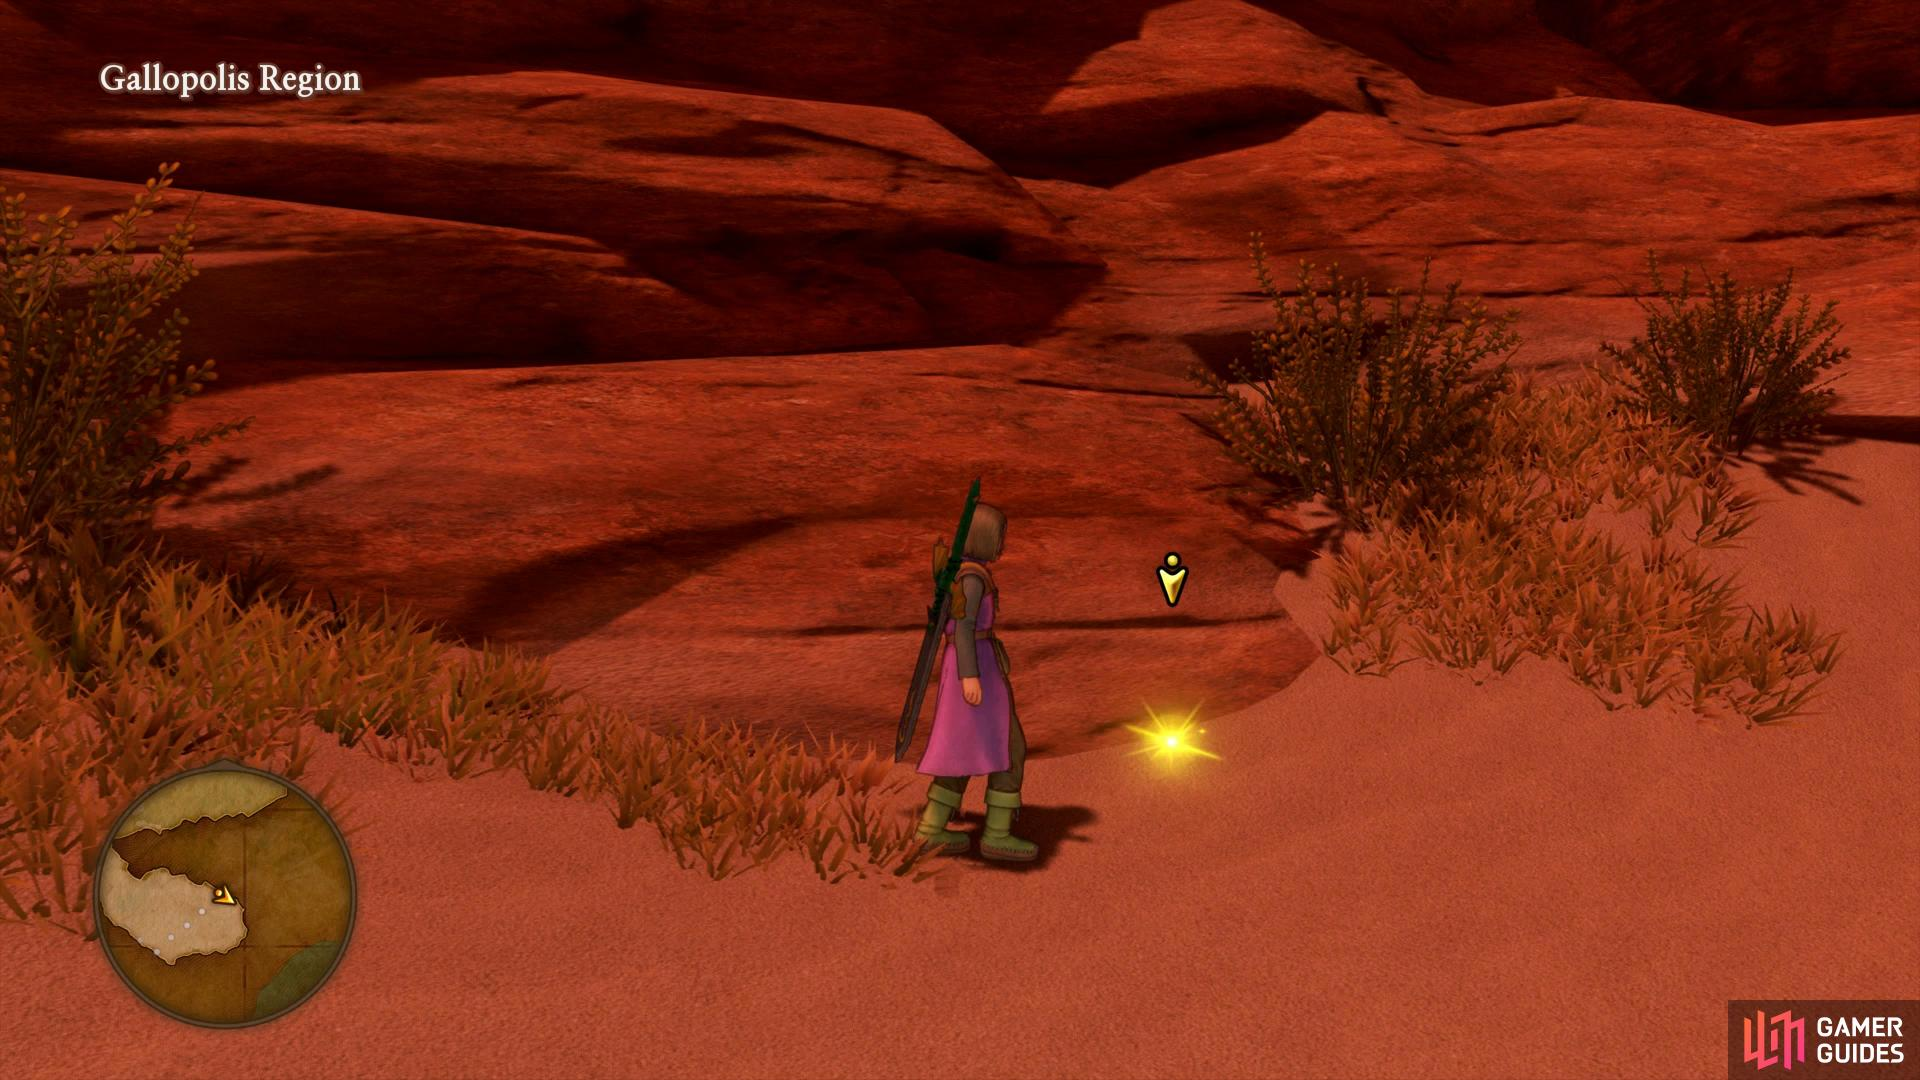 The Desert Rose can be found south of Gallopolis.